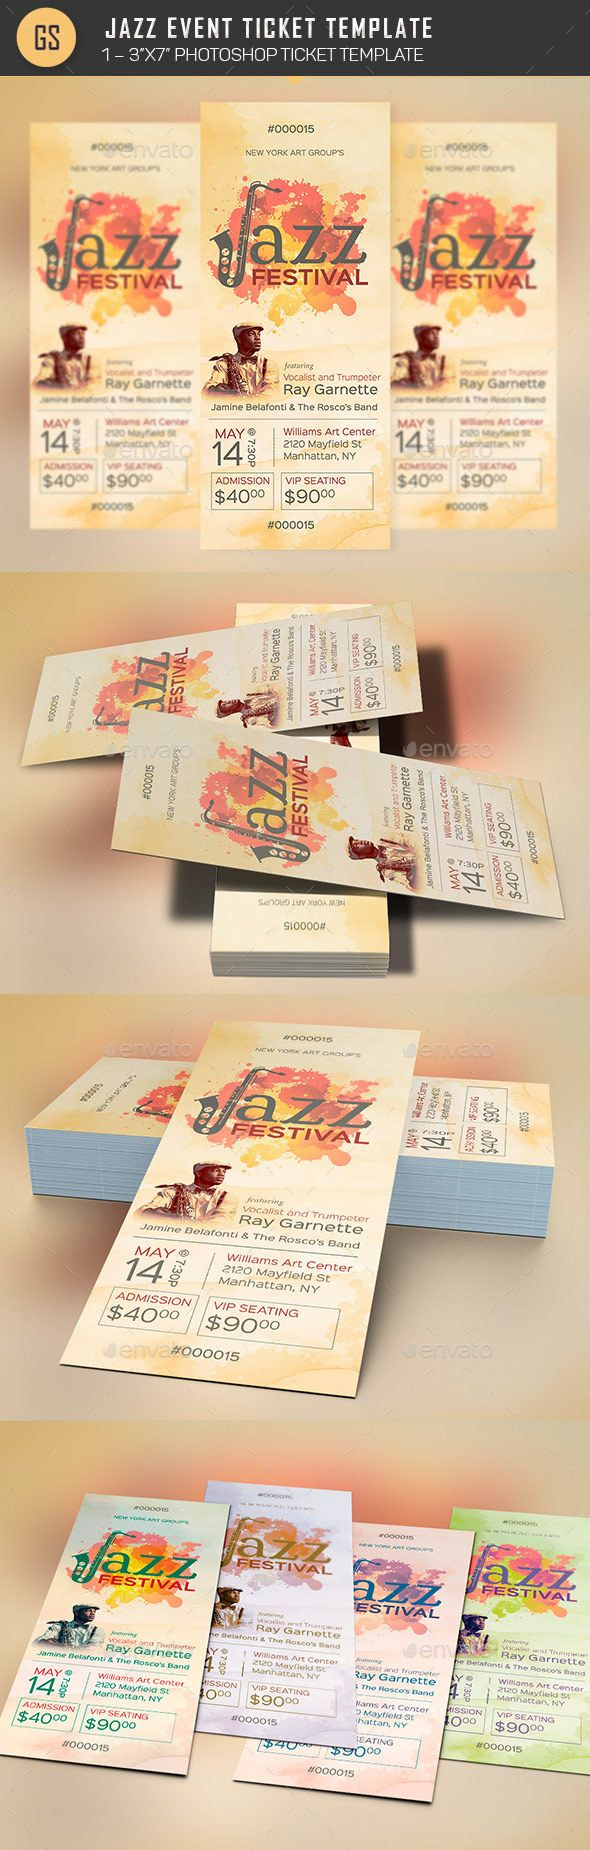 Jazz Event Ticket Template PSD Inspiration Gala O Download